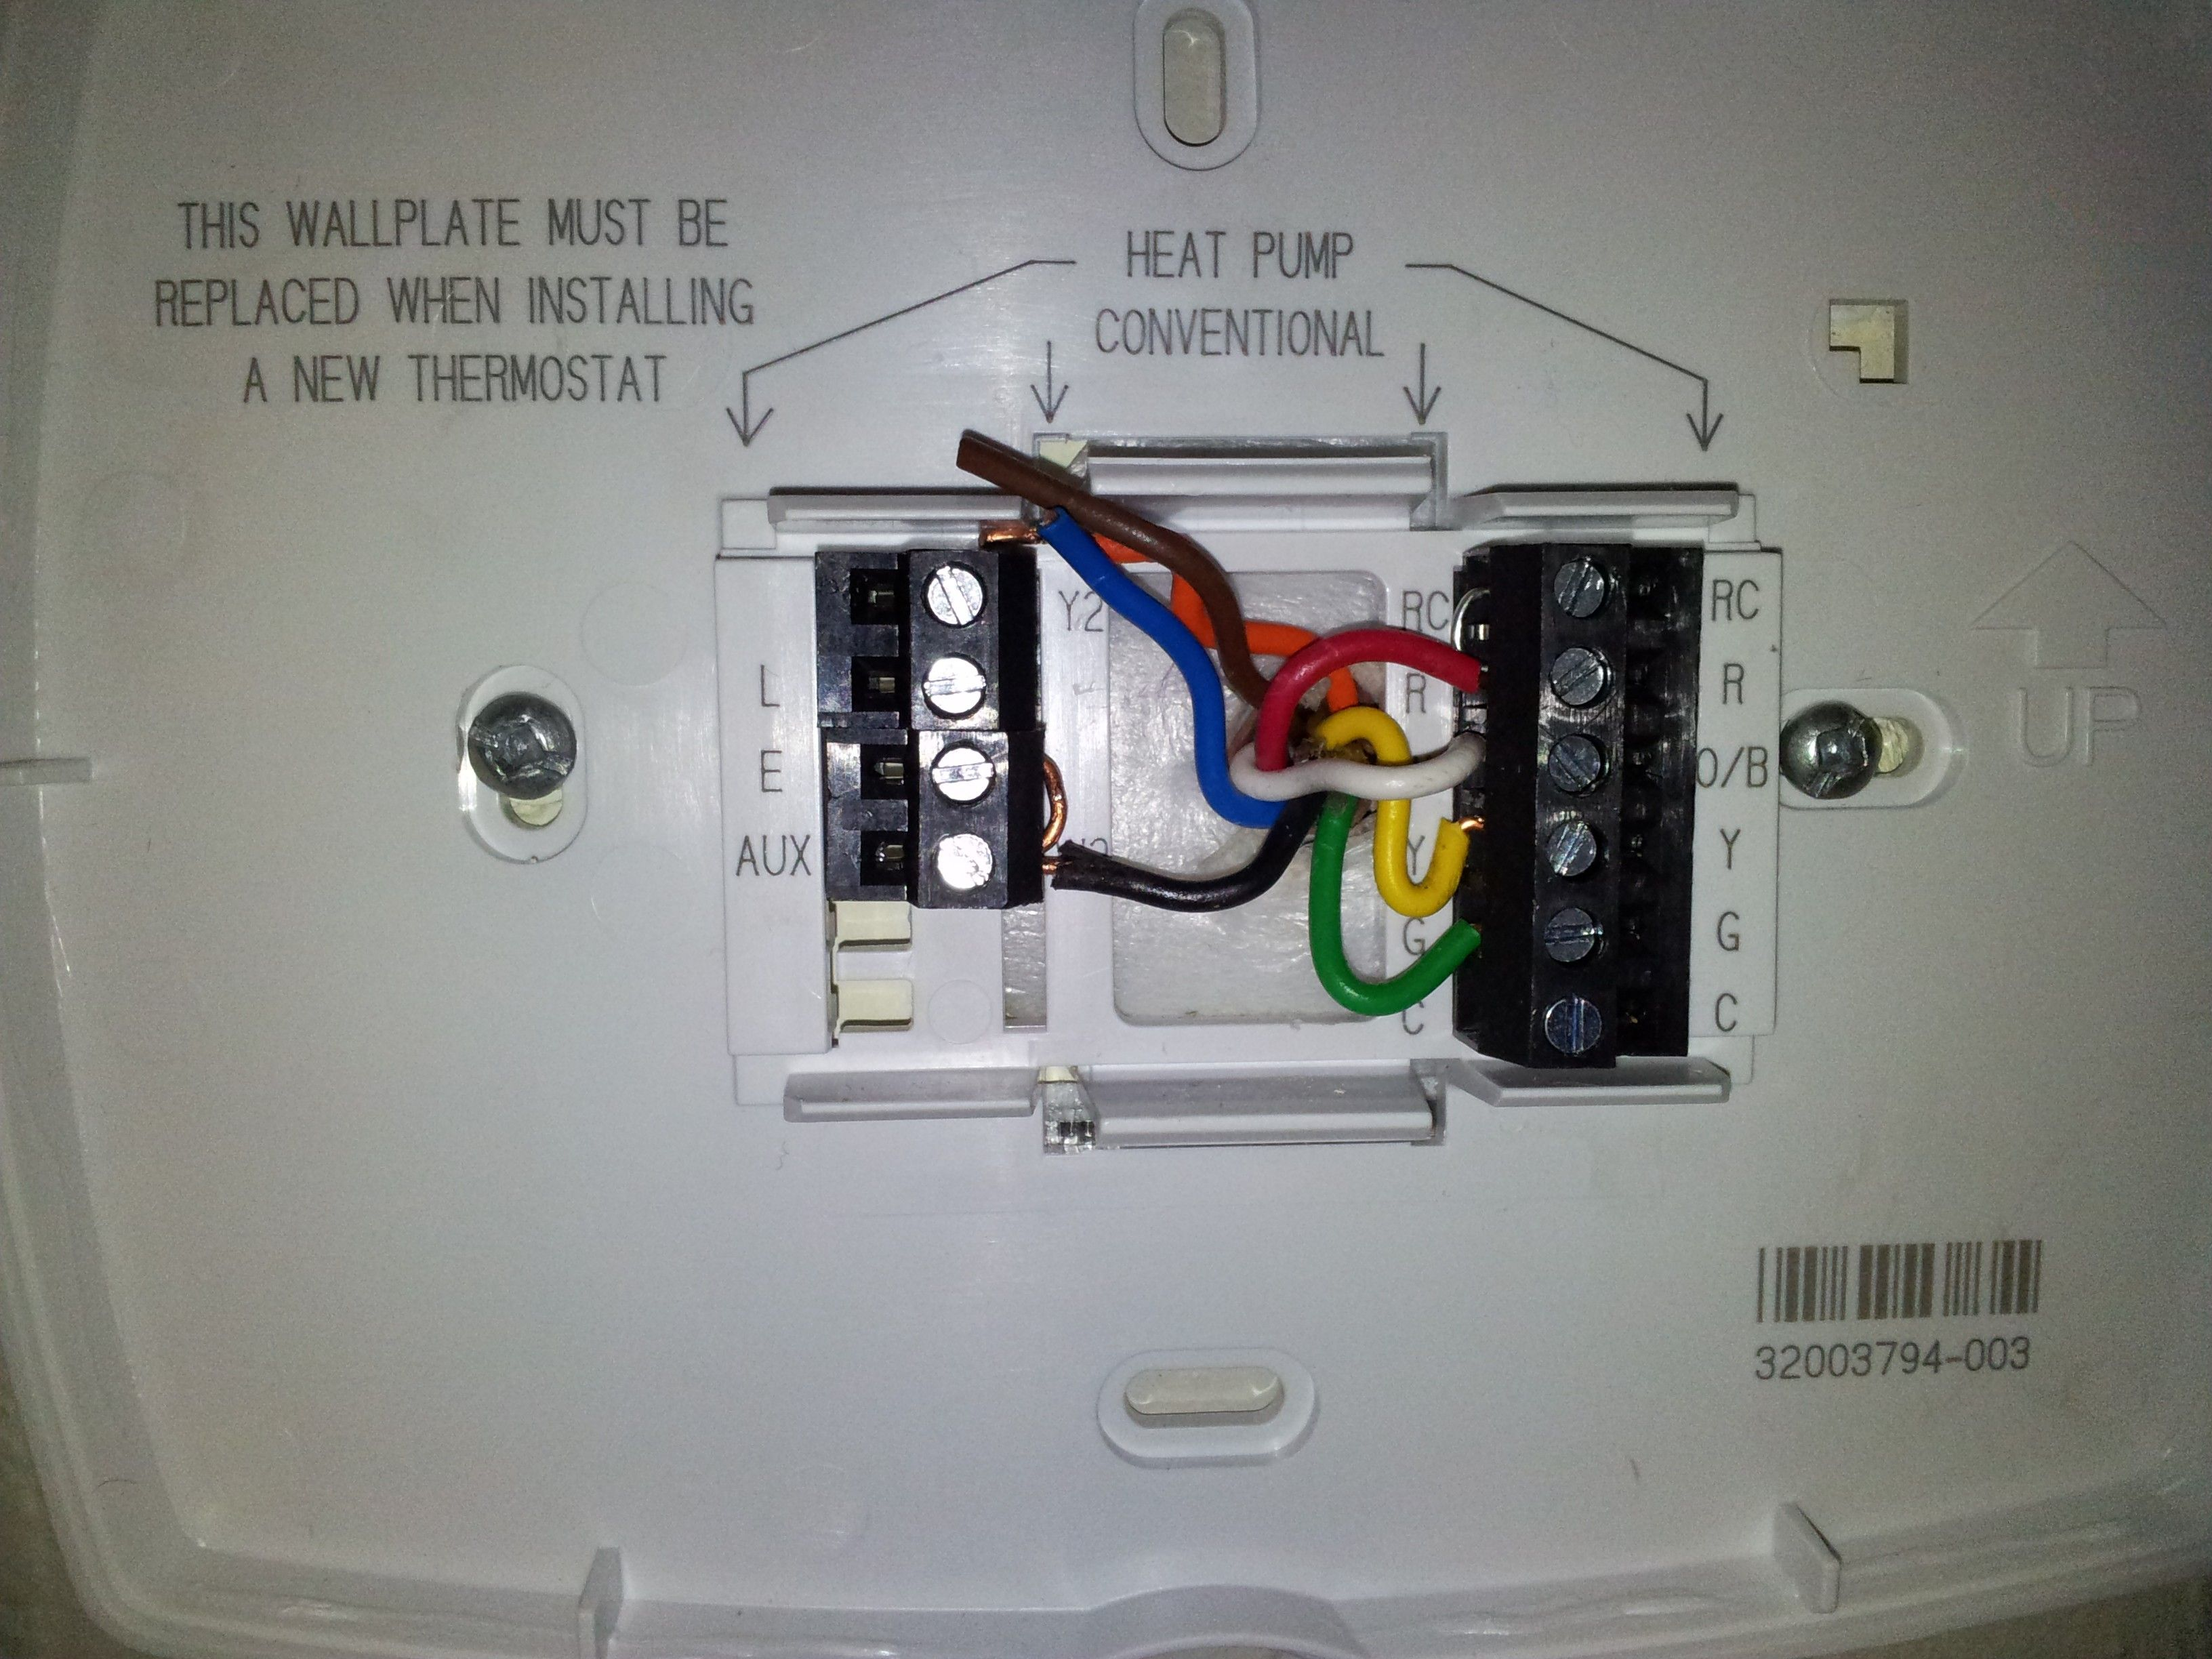 New Honeywell thermostat Rth7600 Wiring Diagram diagram